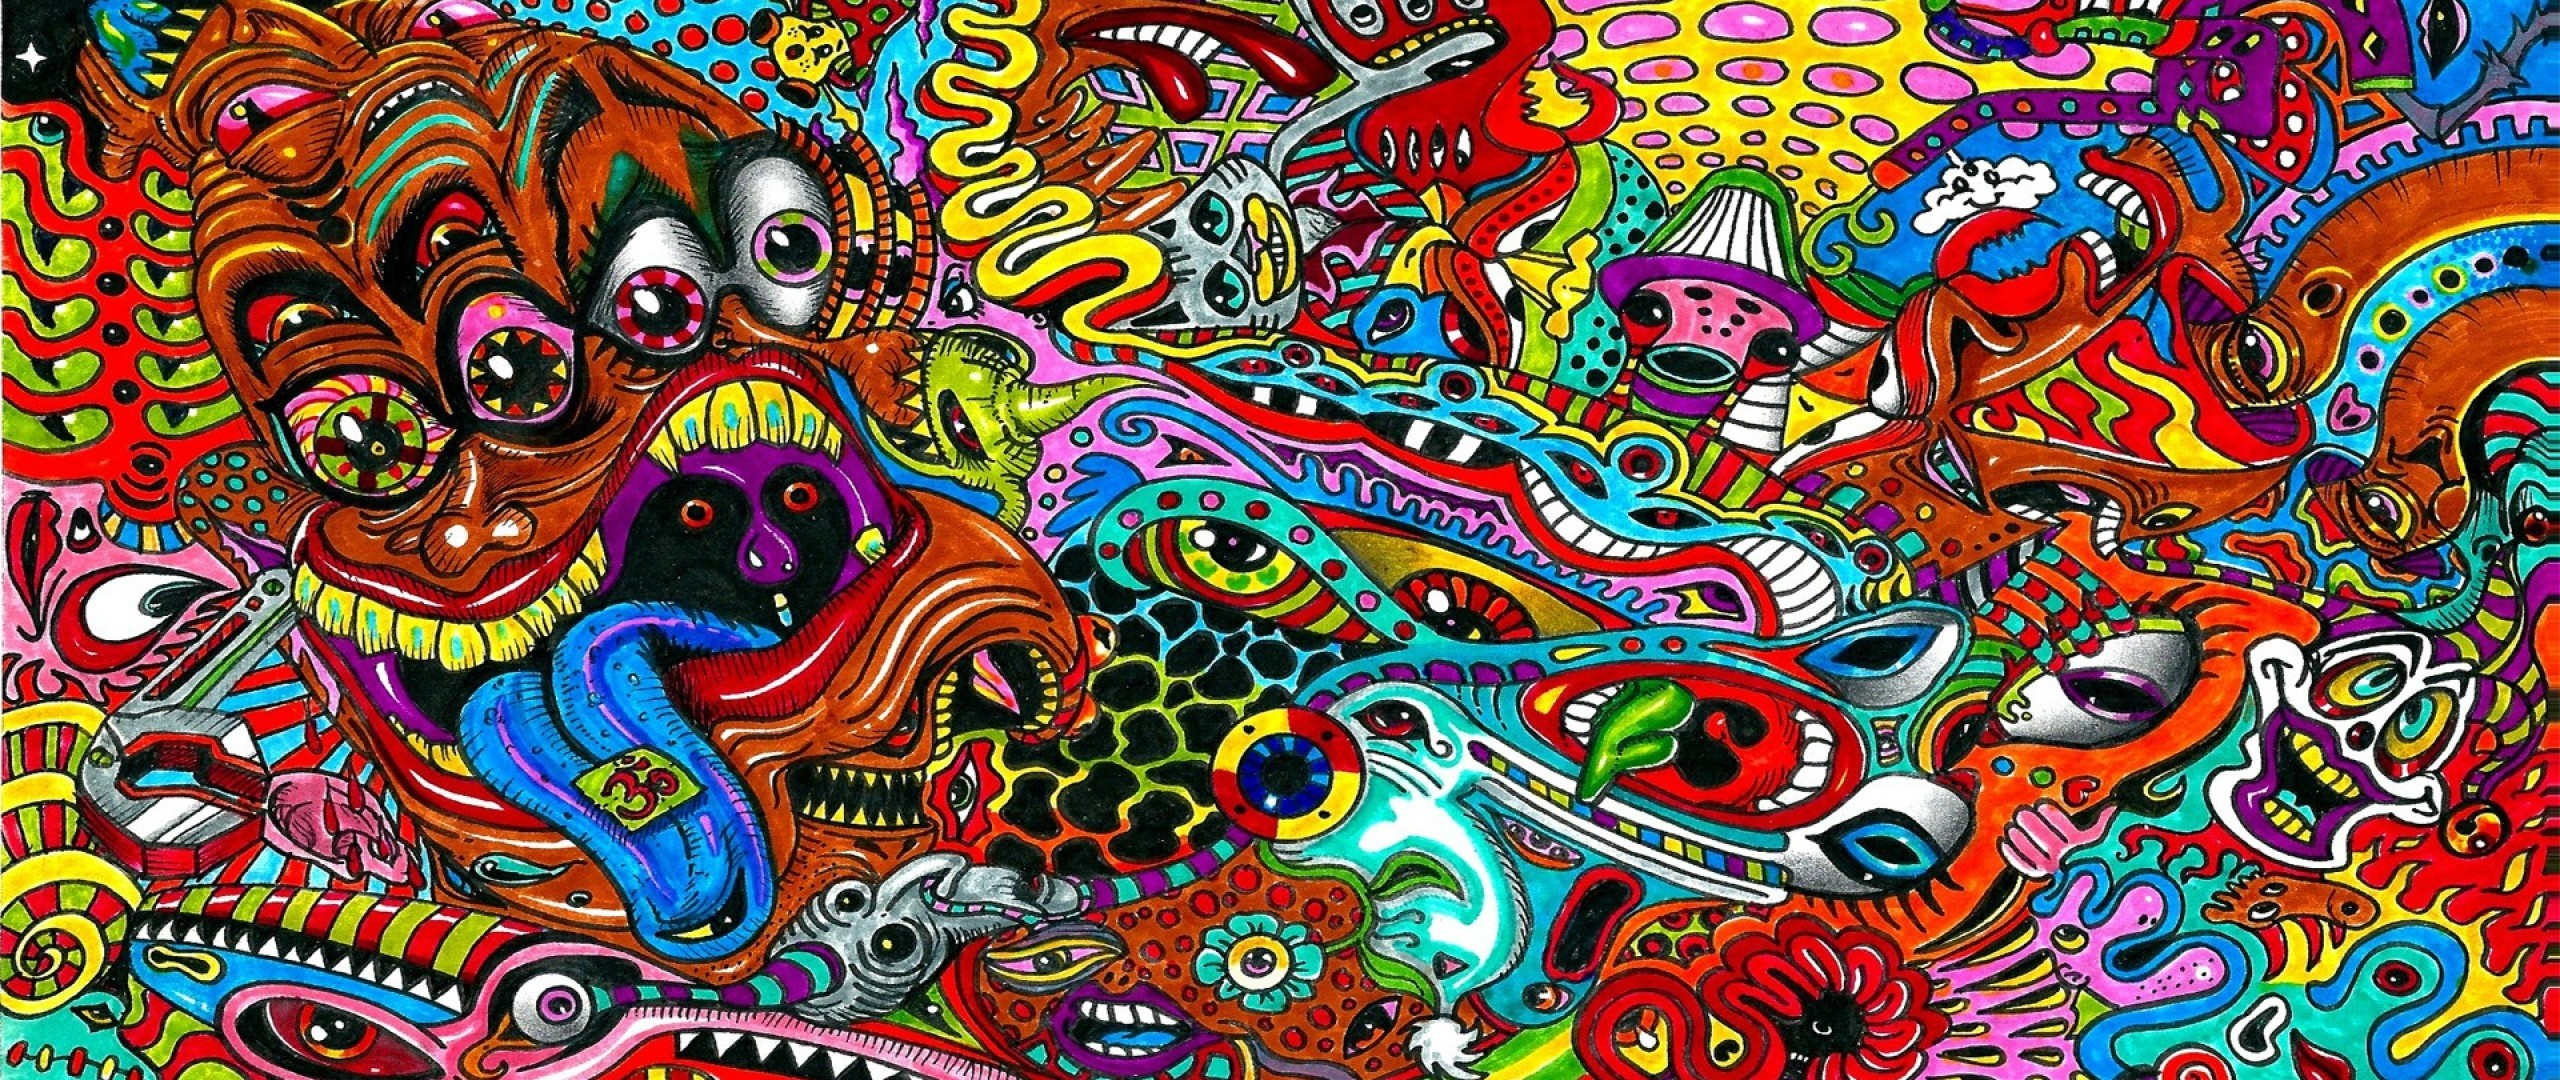 Preview wallpaper drawing, surreal, colorful, psychedelic 2560×1080